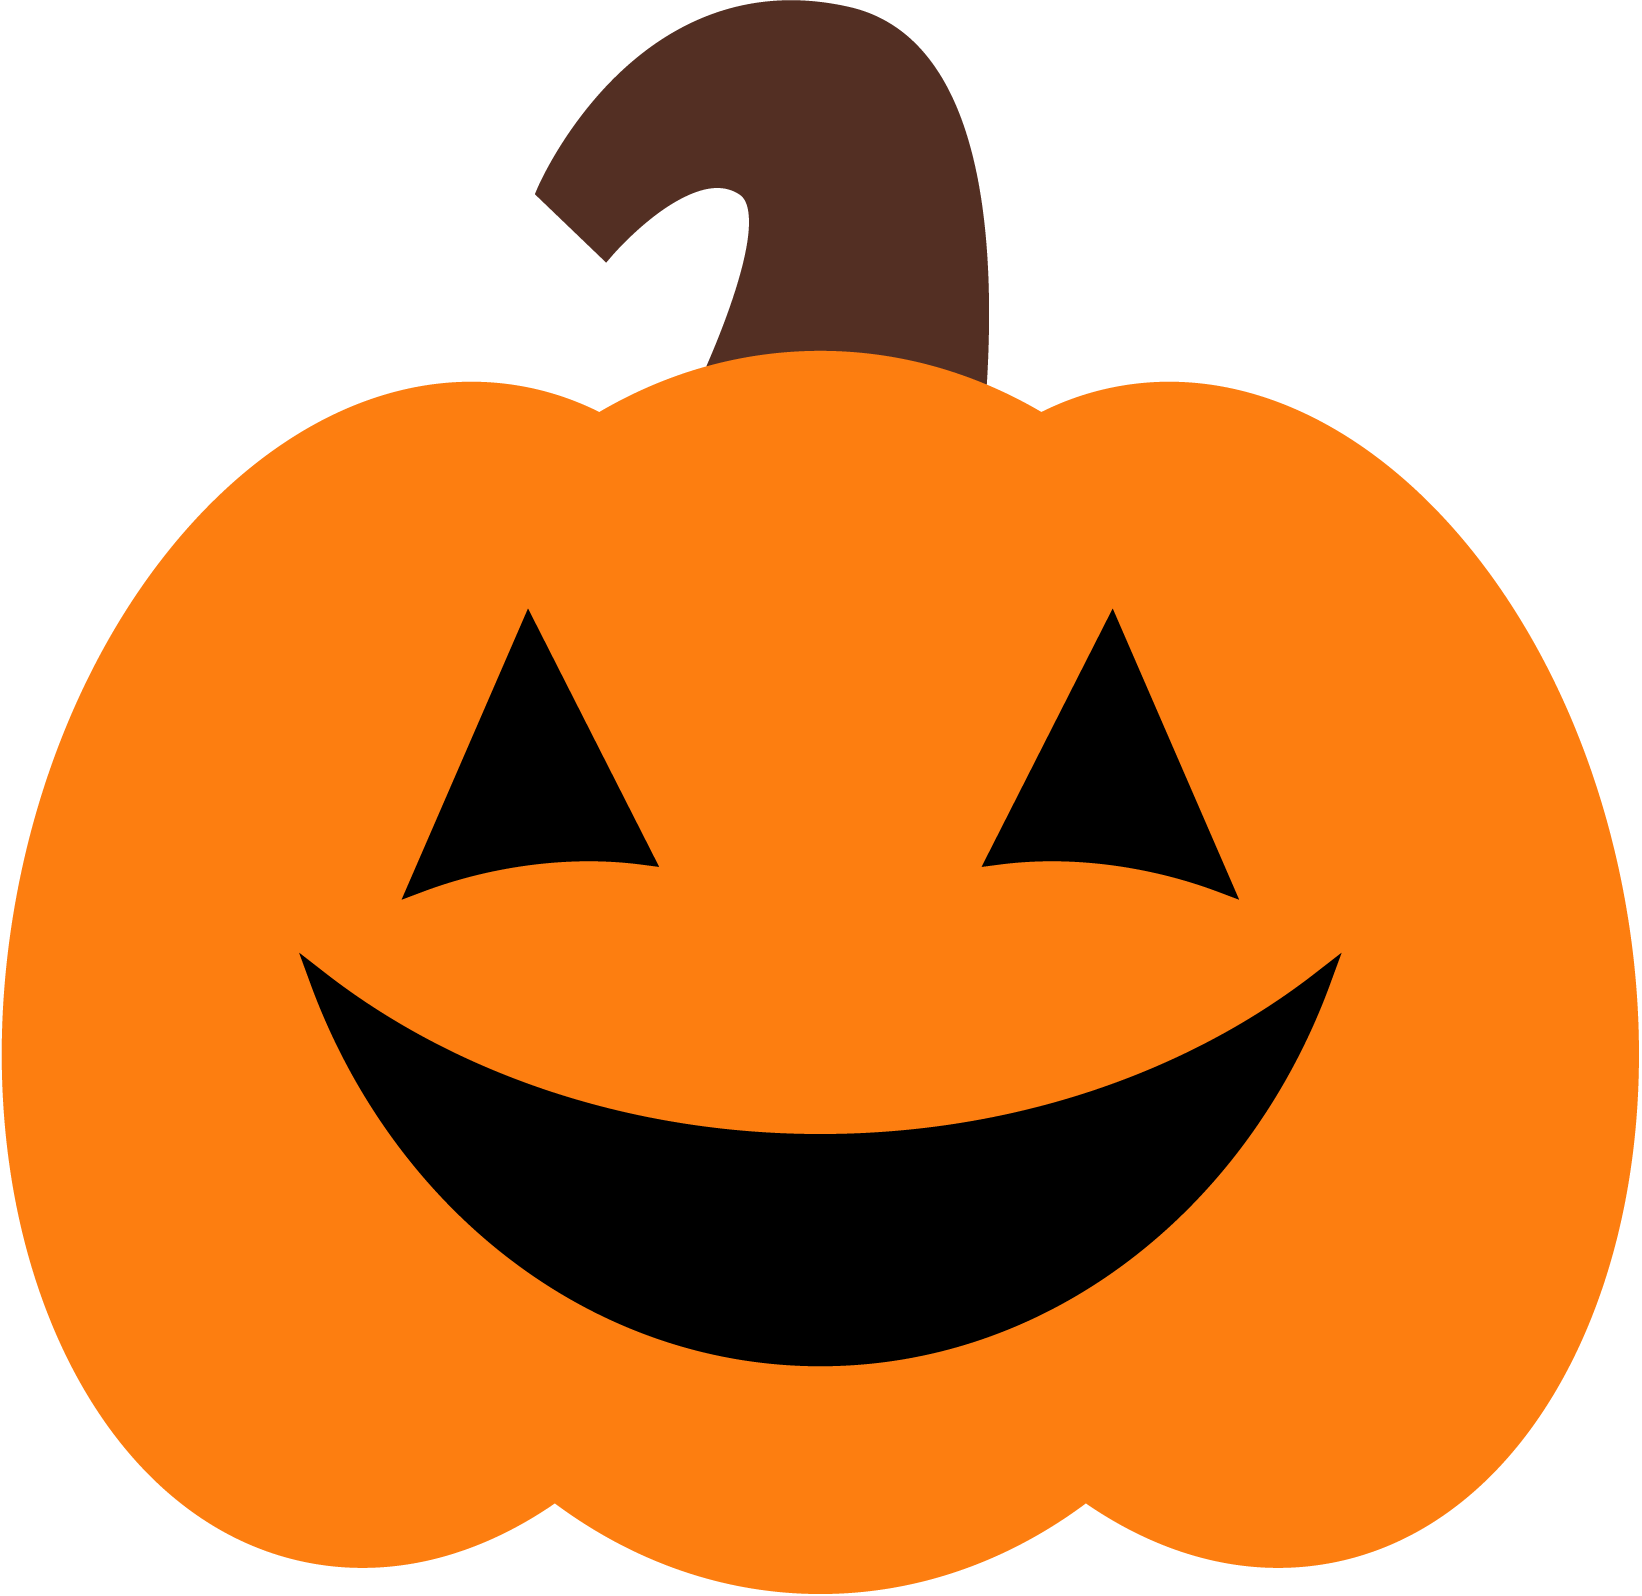 Vector pumpkins pumkin. Sparkly search result cliparts